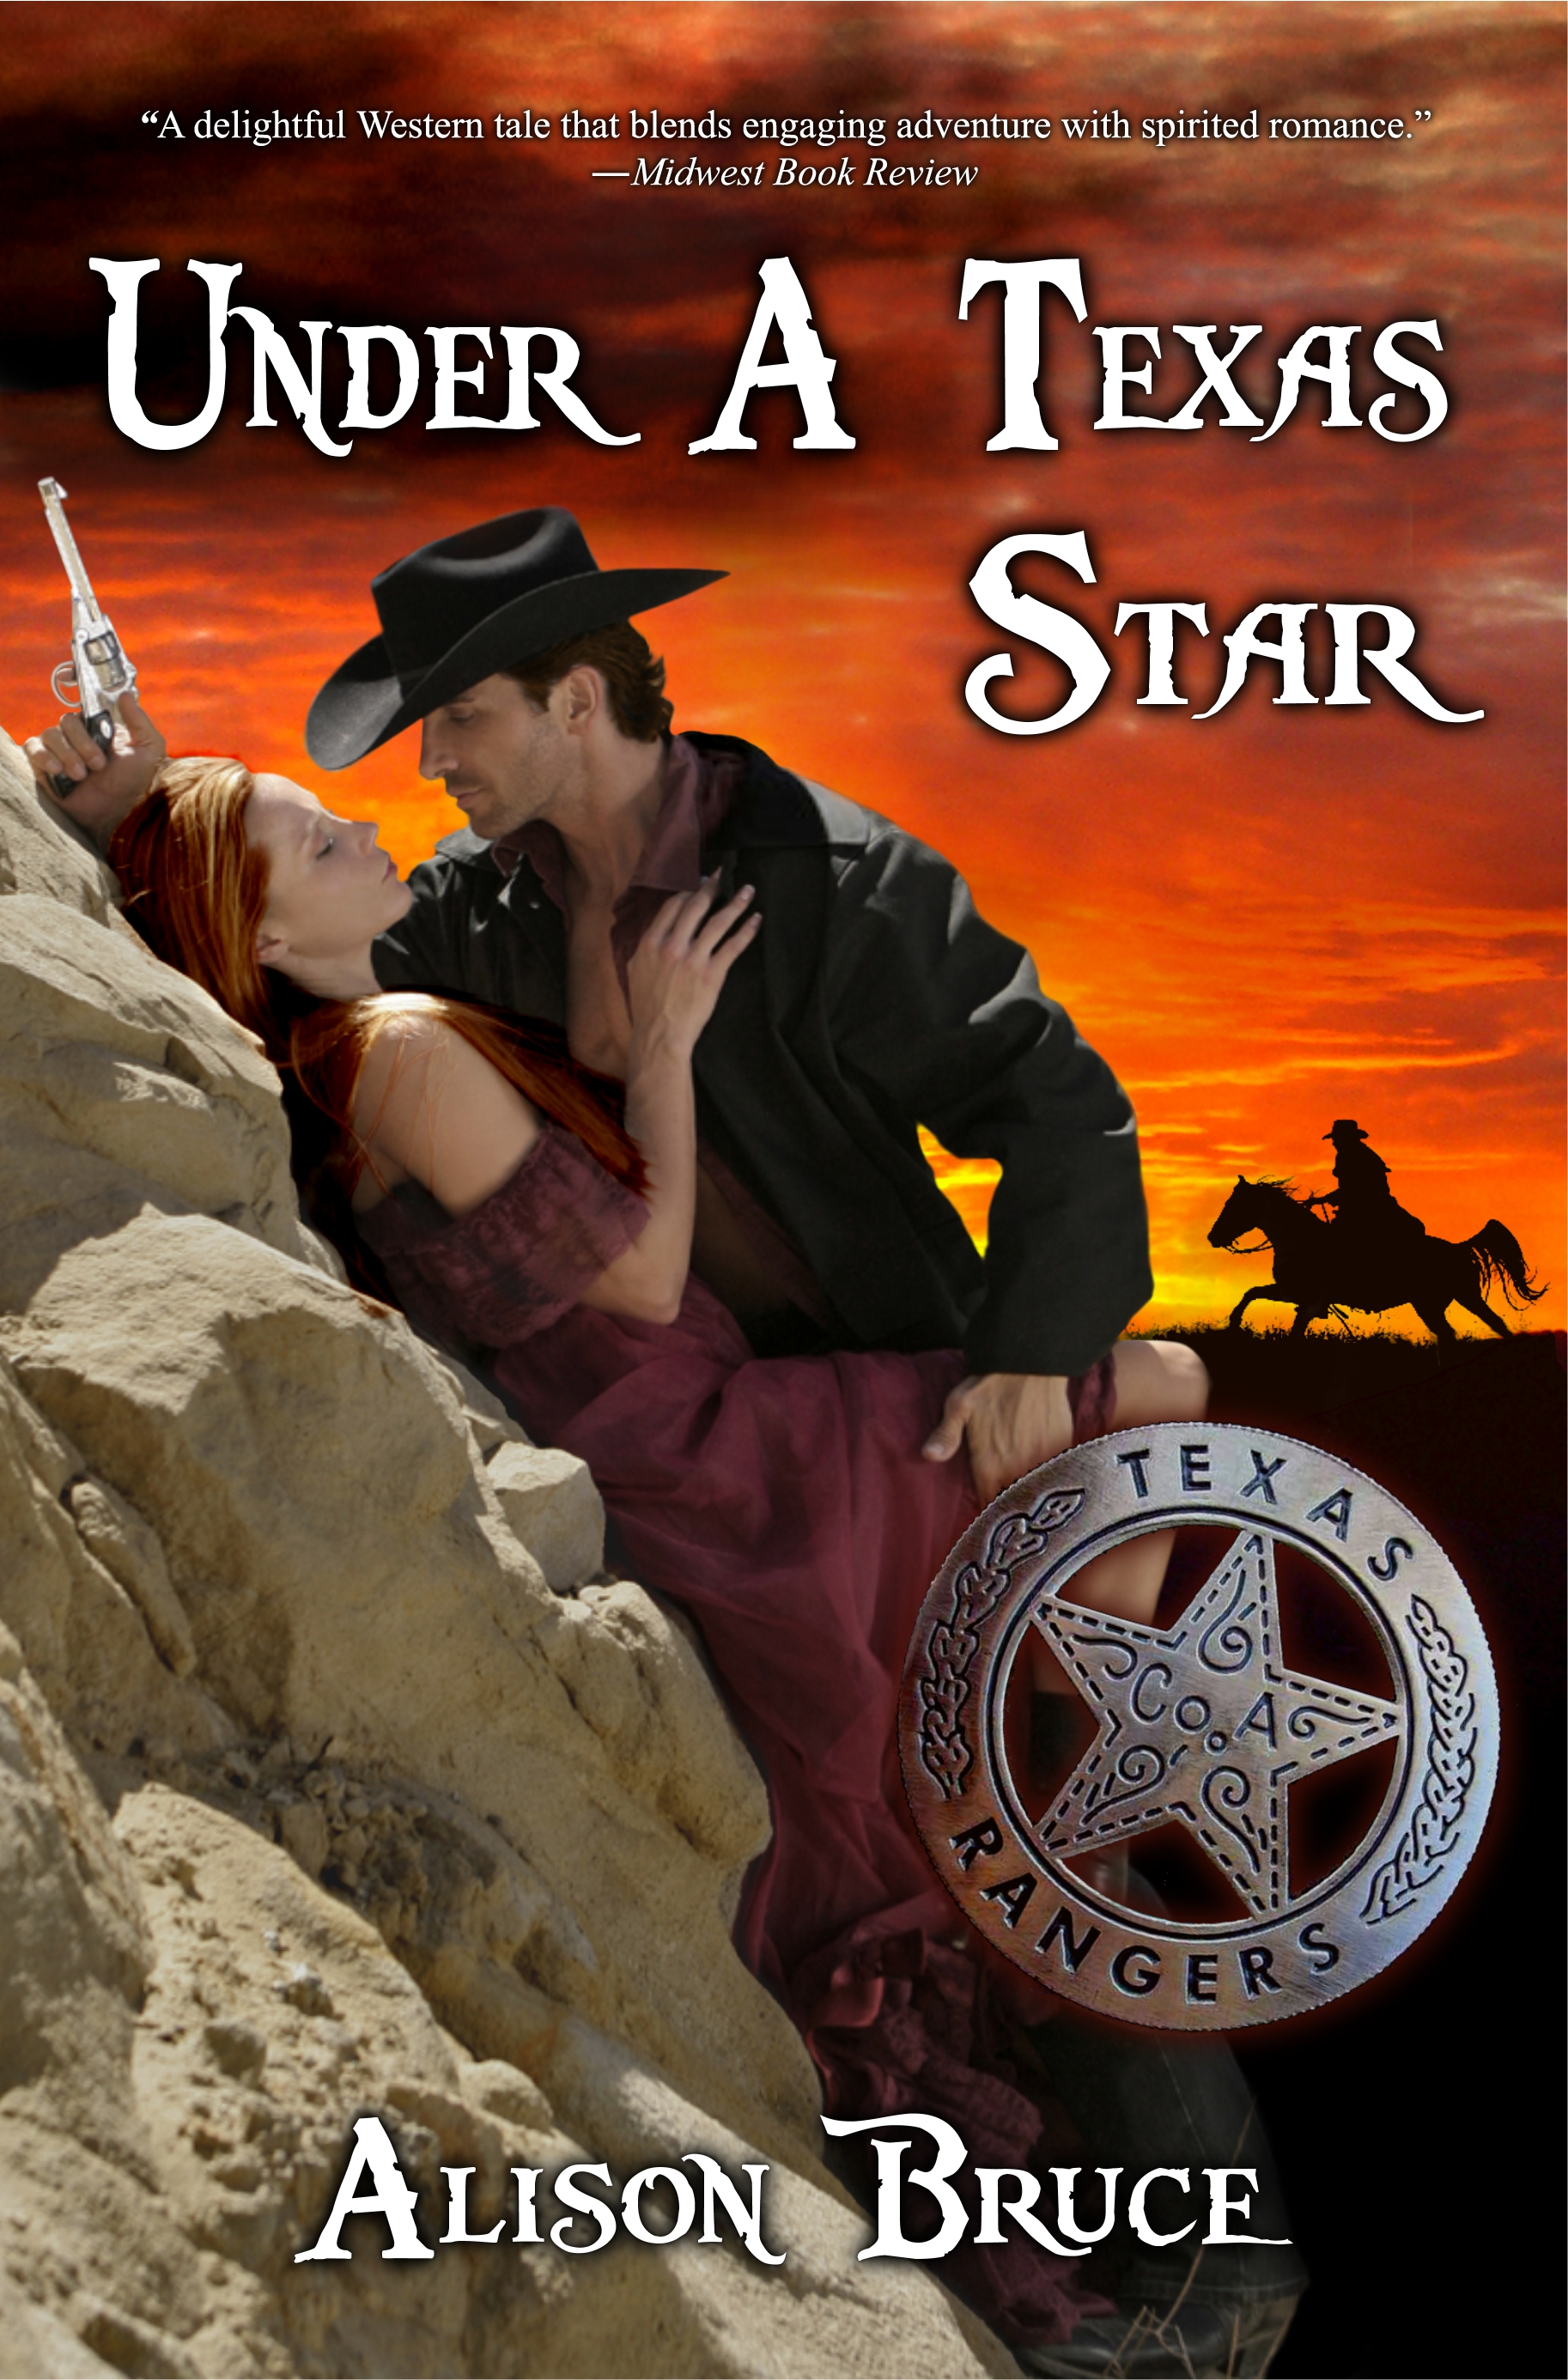 Western Book Cover Art : Under a texas star by alison bruce western historical